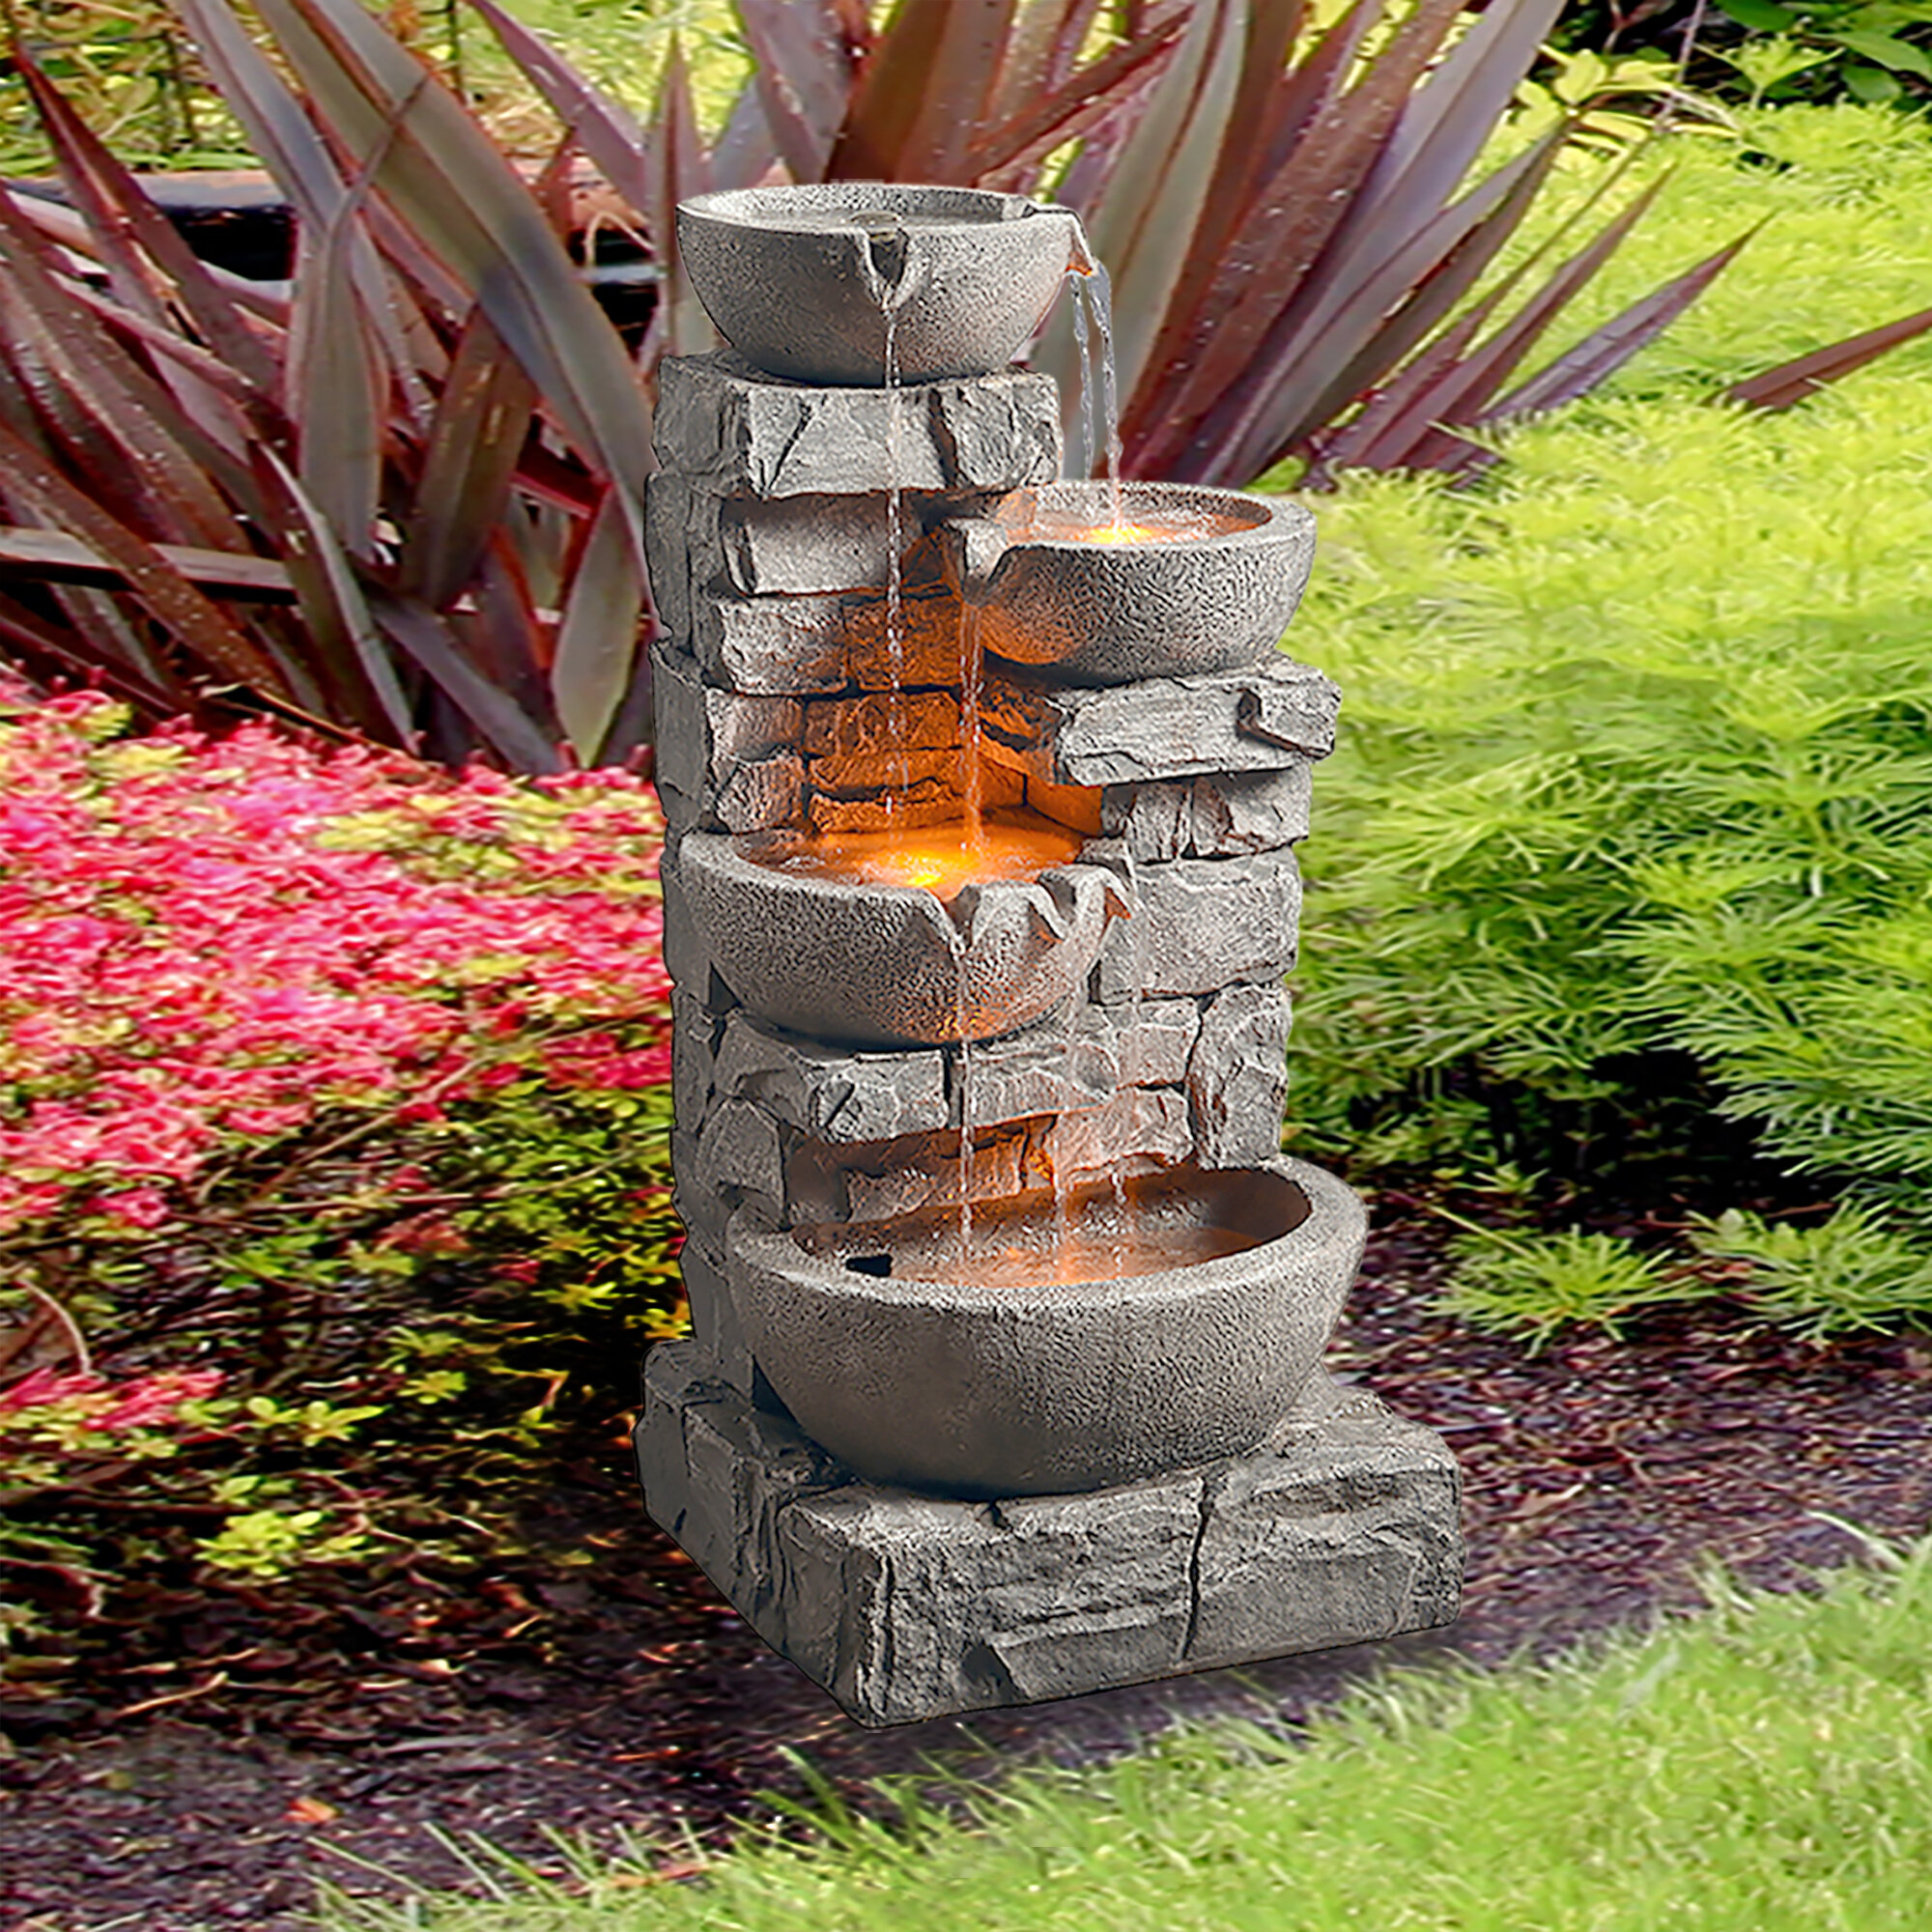 Ivy Bronx Petrie Resin Stone Tiered Bowls Fountain With Light Reviews Wayfair